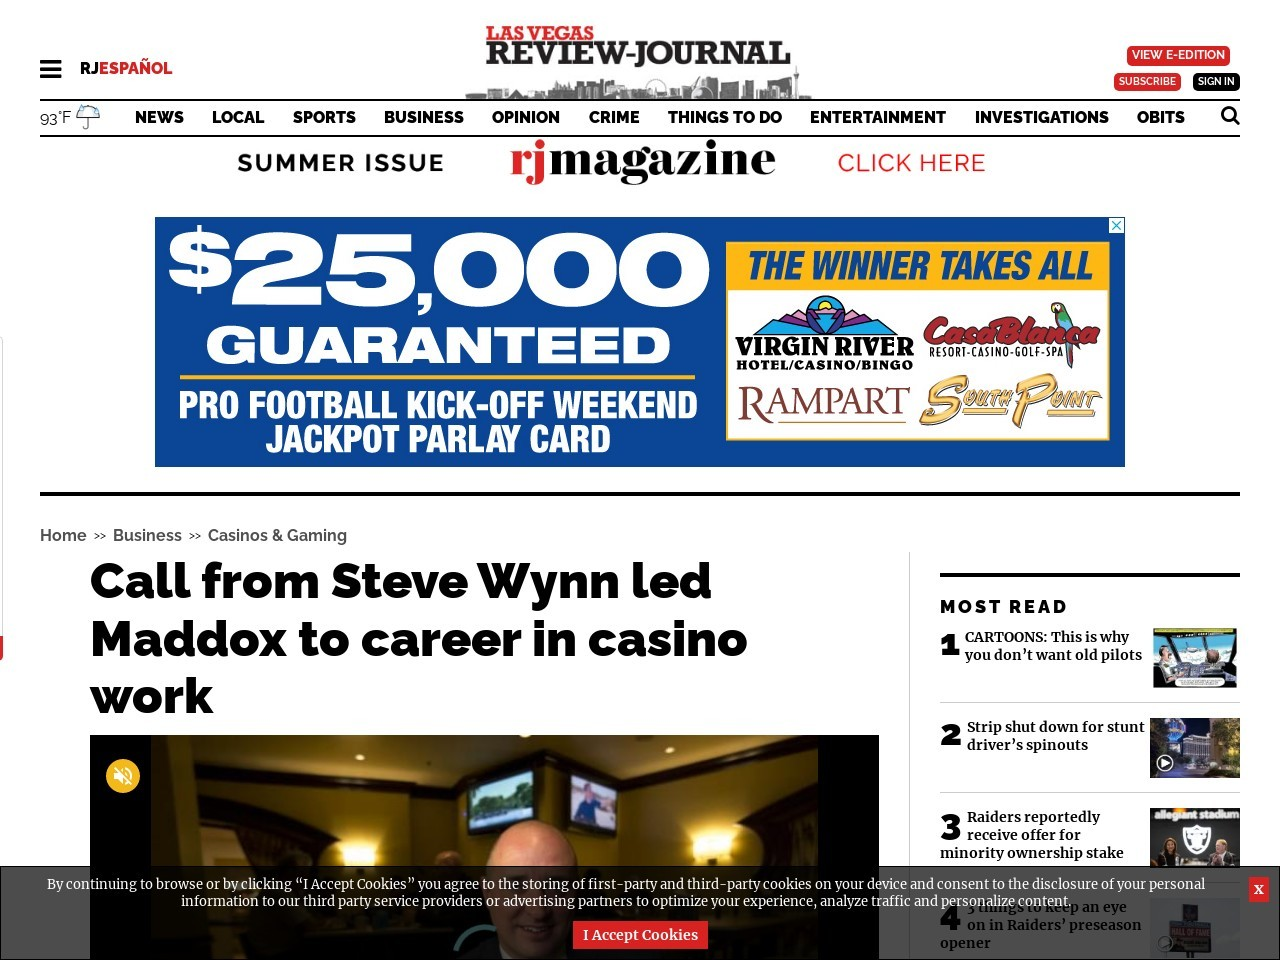 Call from Steve Wynn led Maddox to career in casino work